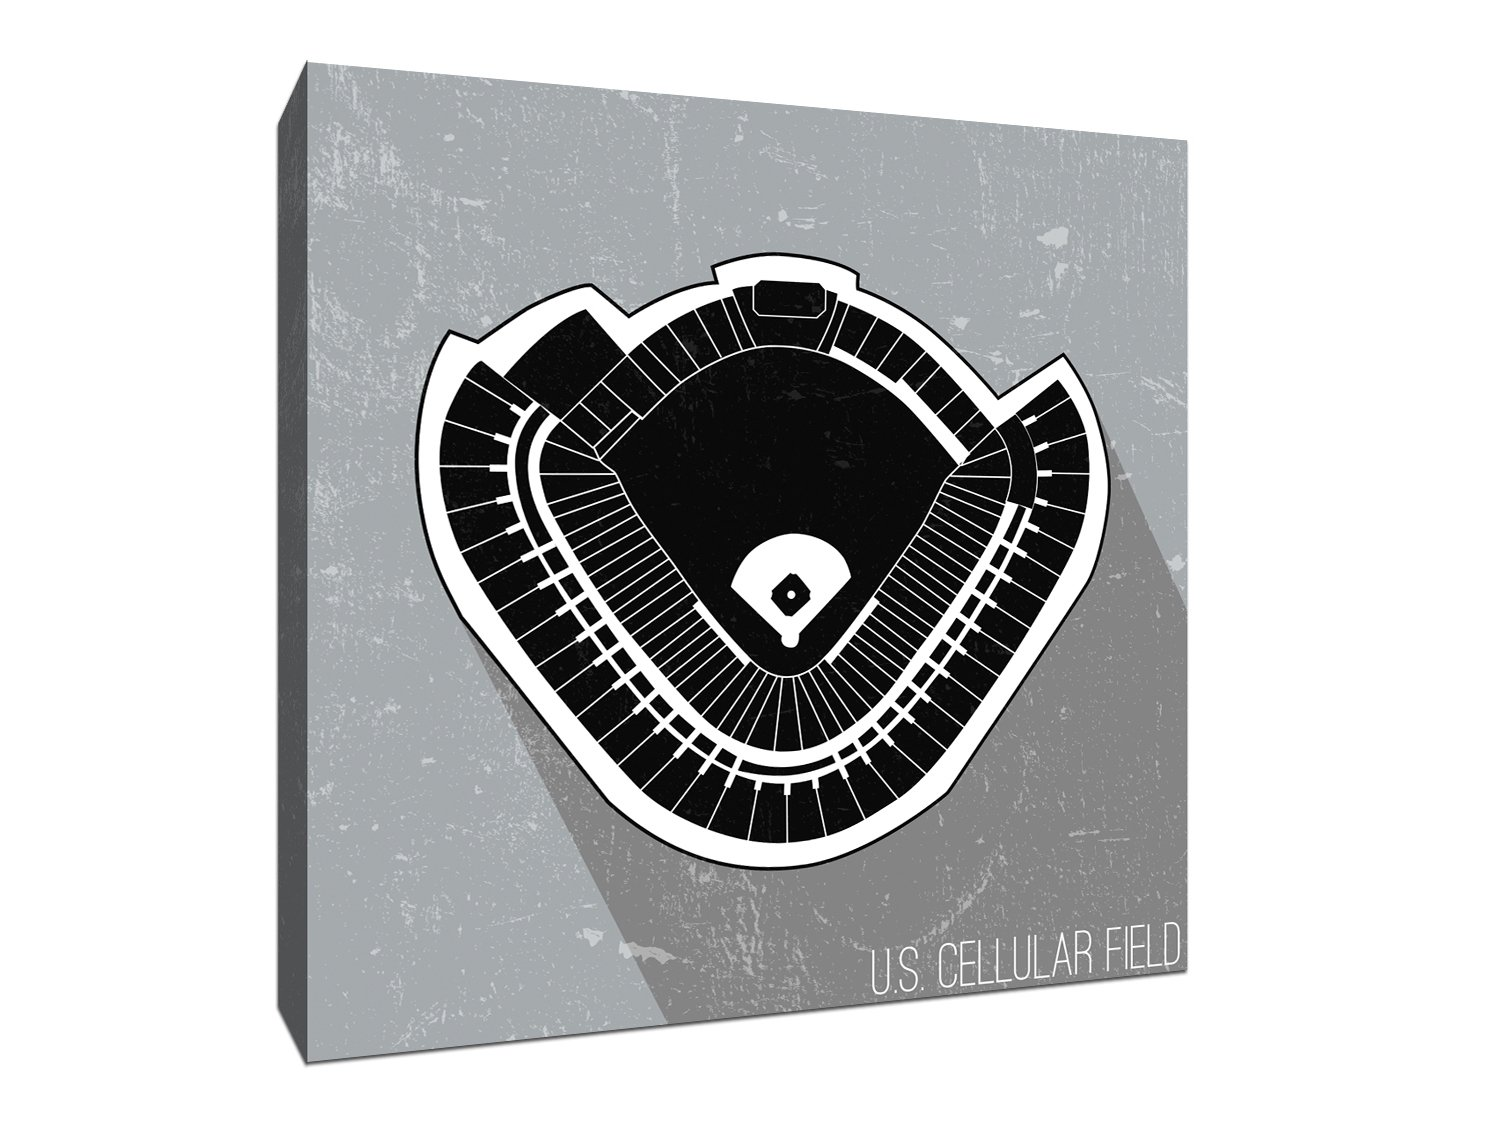 Amazon.com: US Cellular Field Seating Map - MLB Seating Map - 9x9 ...